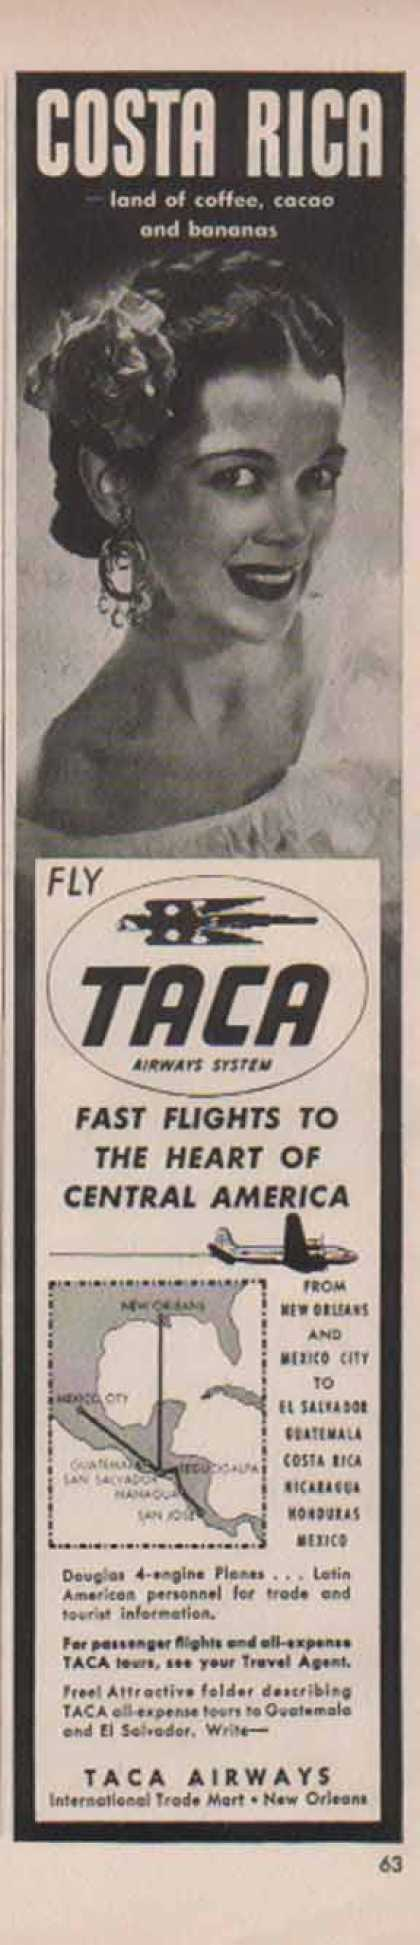 Fly Taca Airways Airlines – Costa Rica (1948)